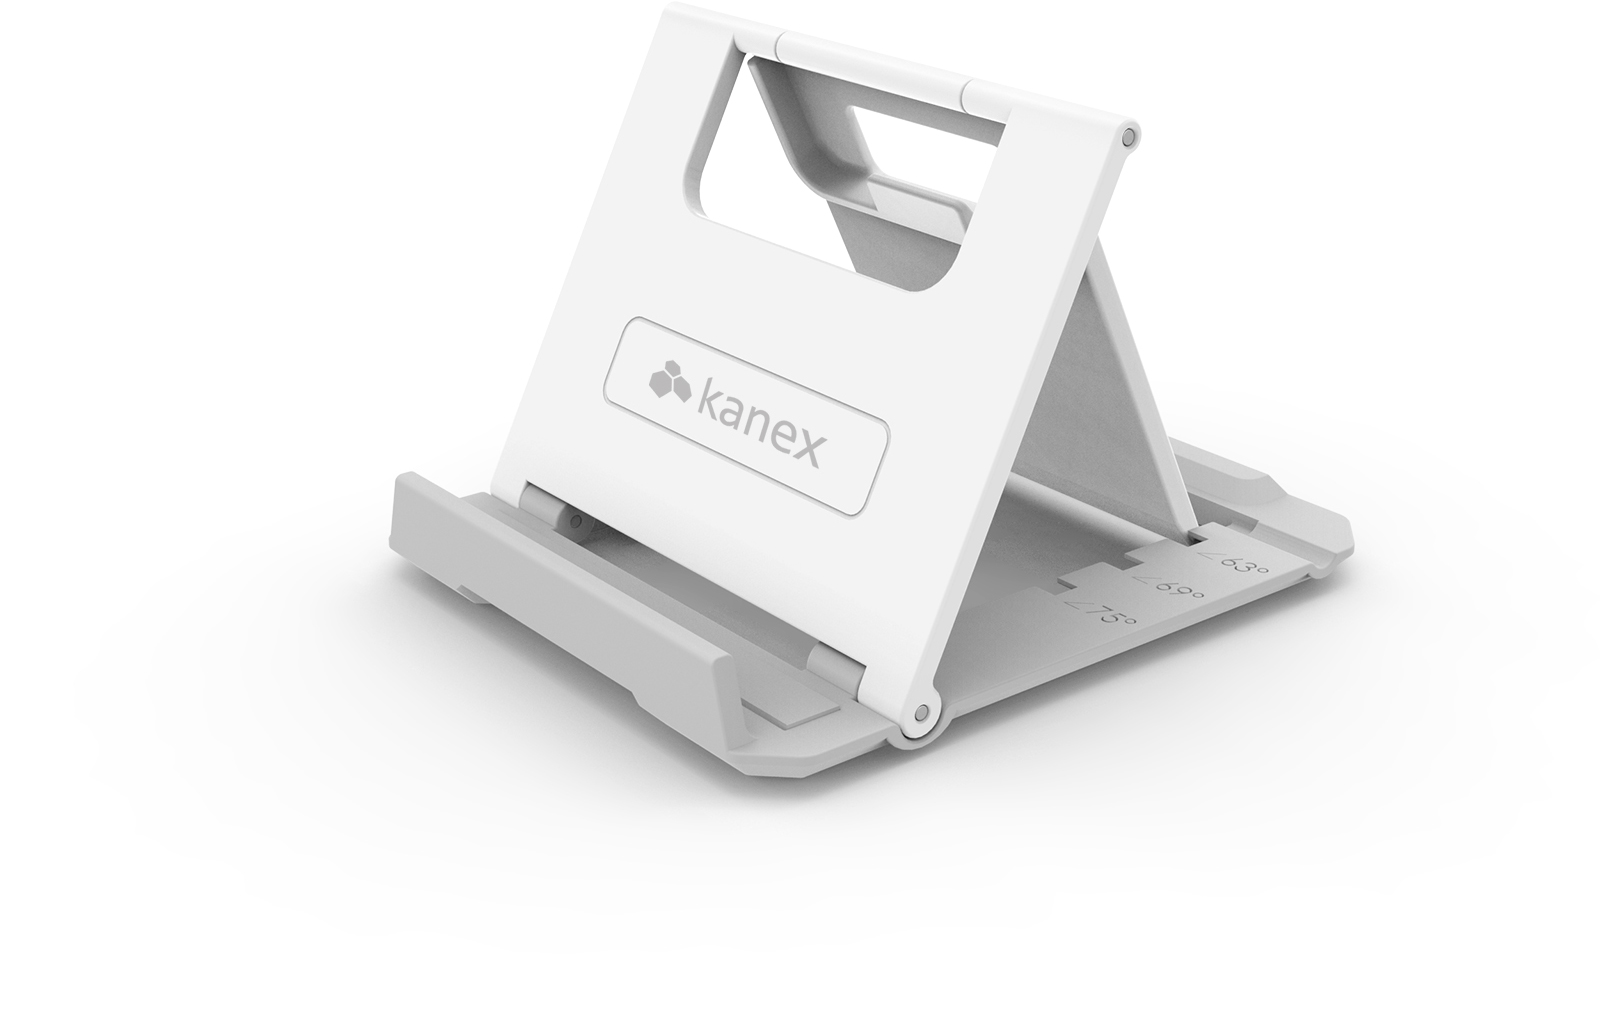 Kanex Fortable iDevice Stand